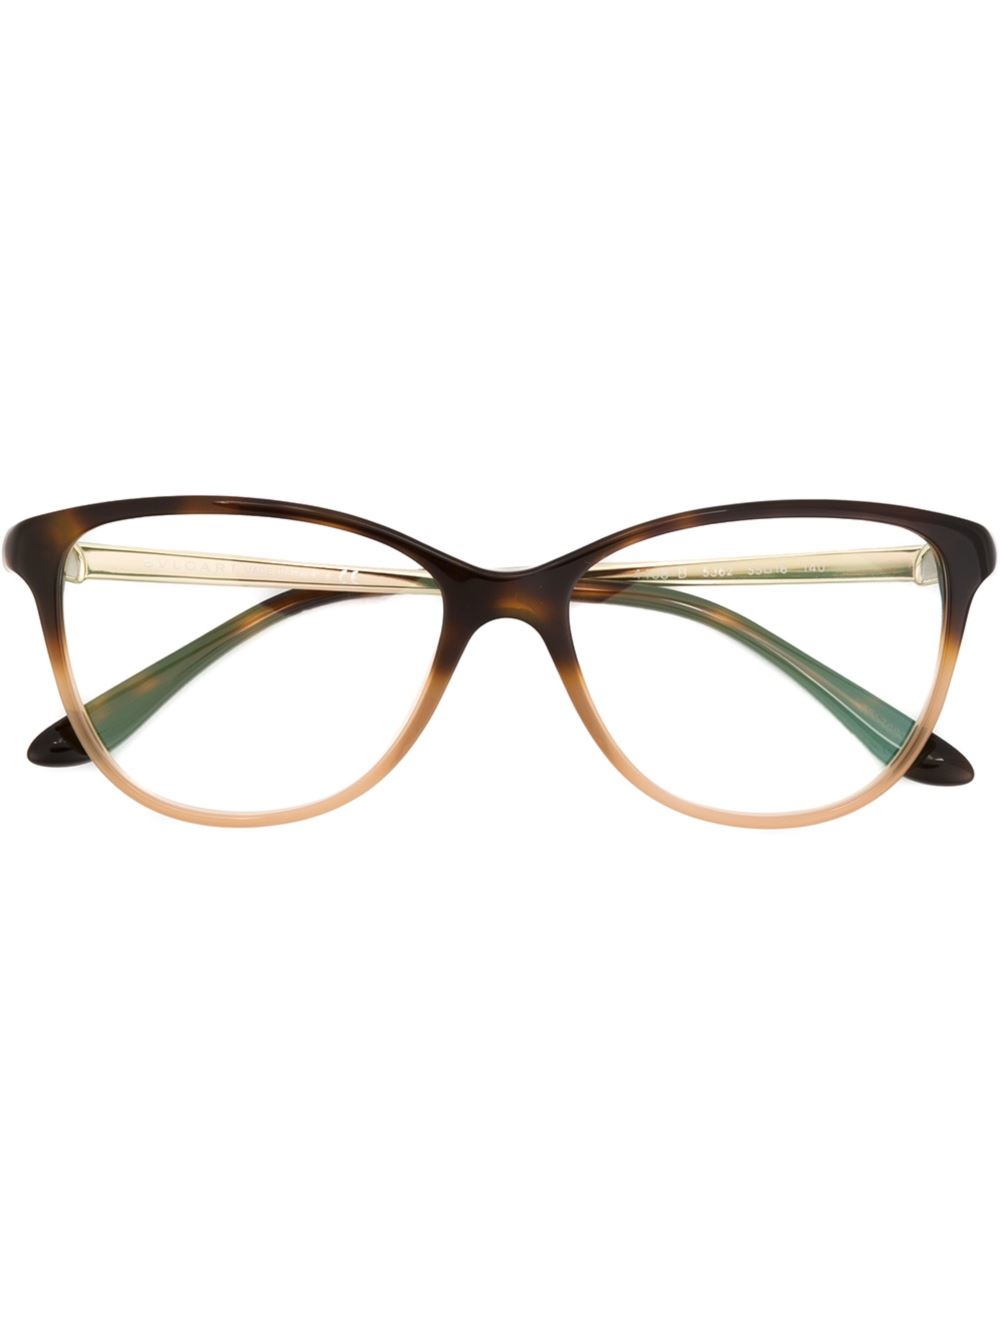 Eyeglass Frames Two Tone : Bvlgari Two-tone Glasses in Brown Lyst